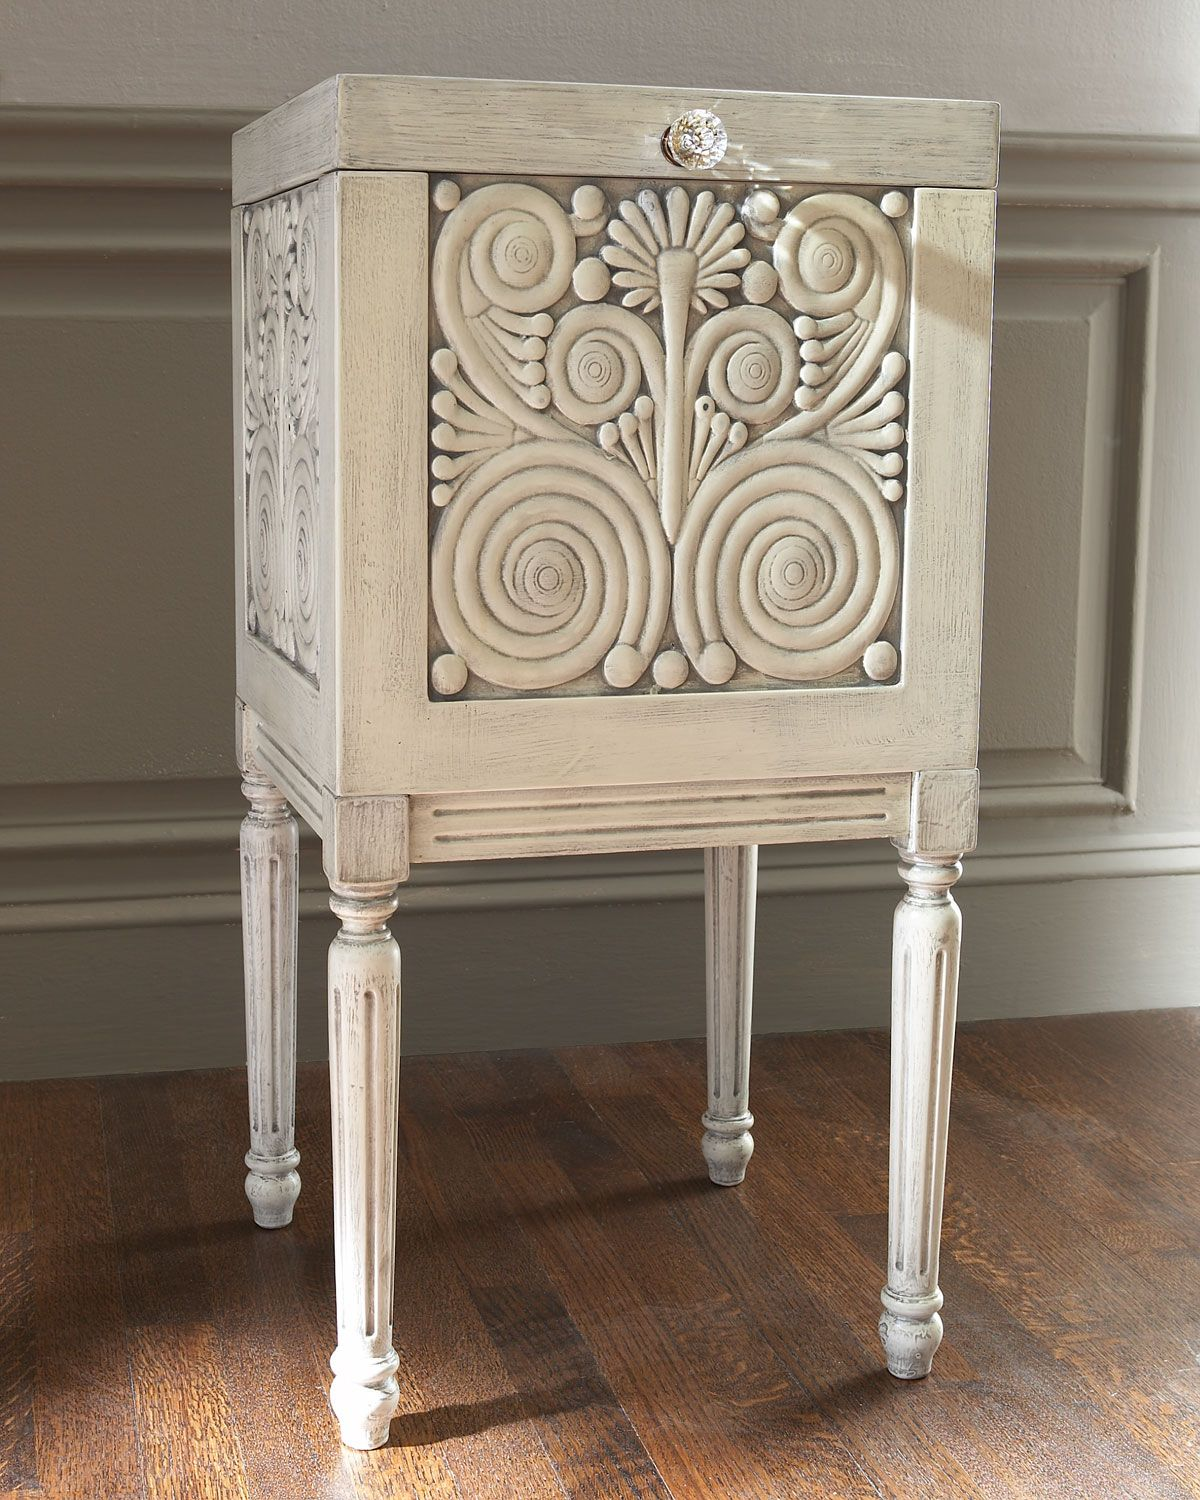 Filing Boxes Decorative Most Beautiful Filing Cabinet $260 Usd Plus Shipping From Neiman